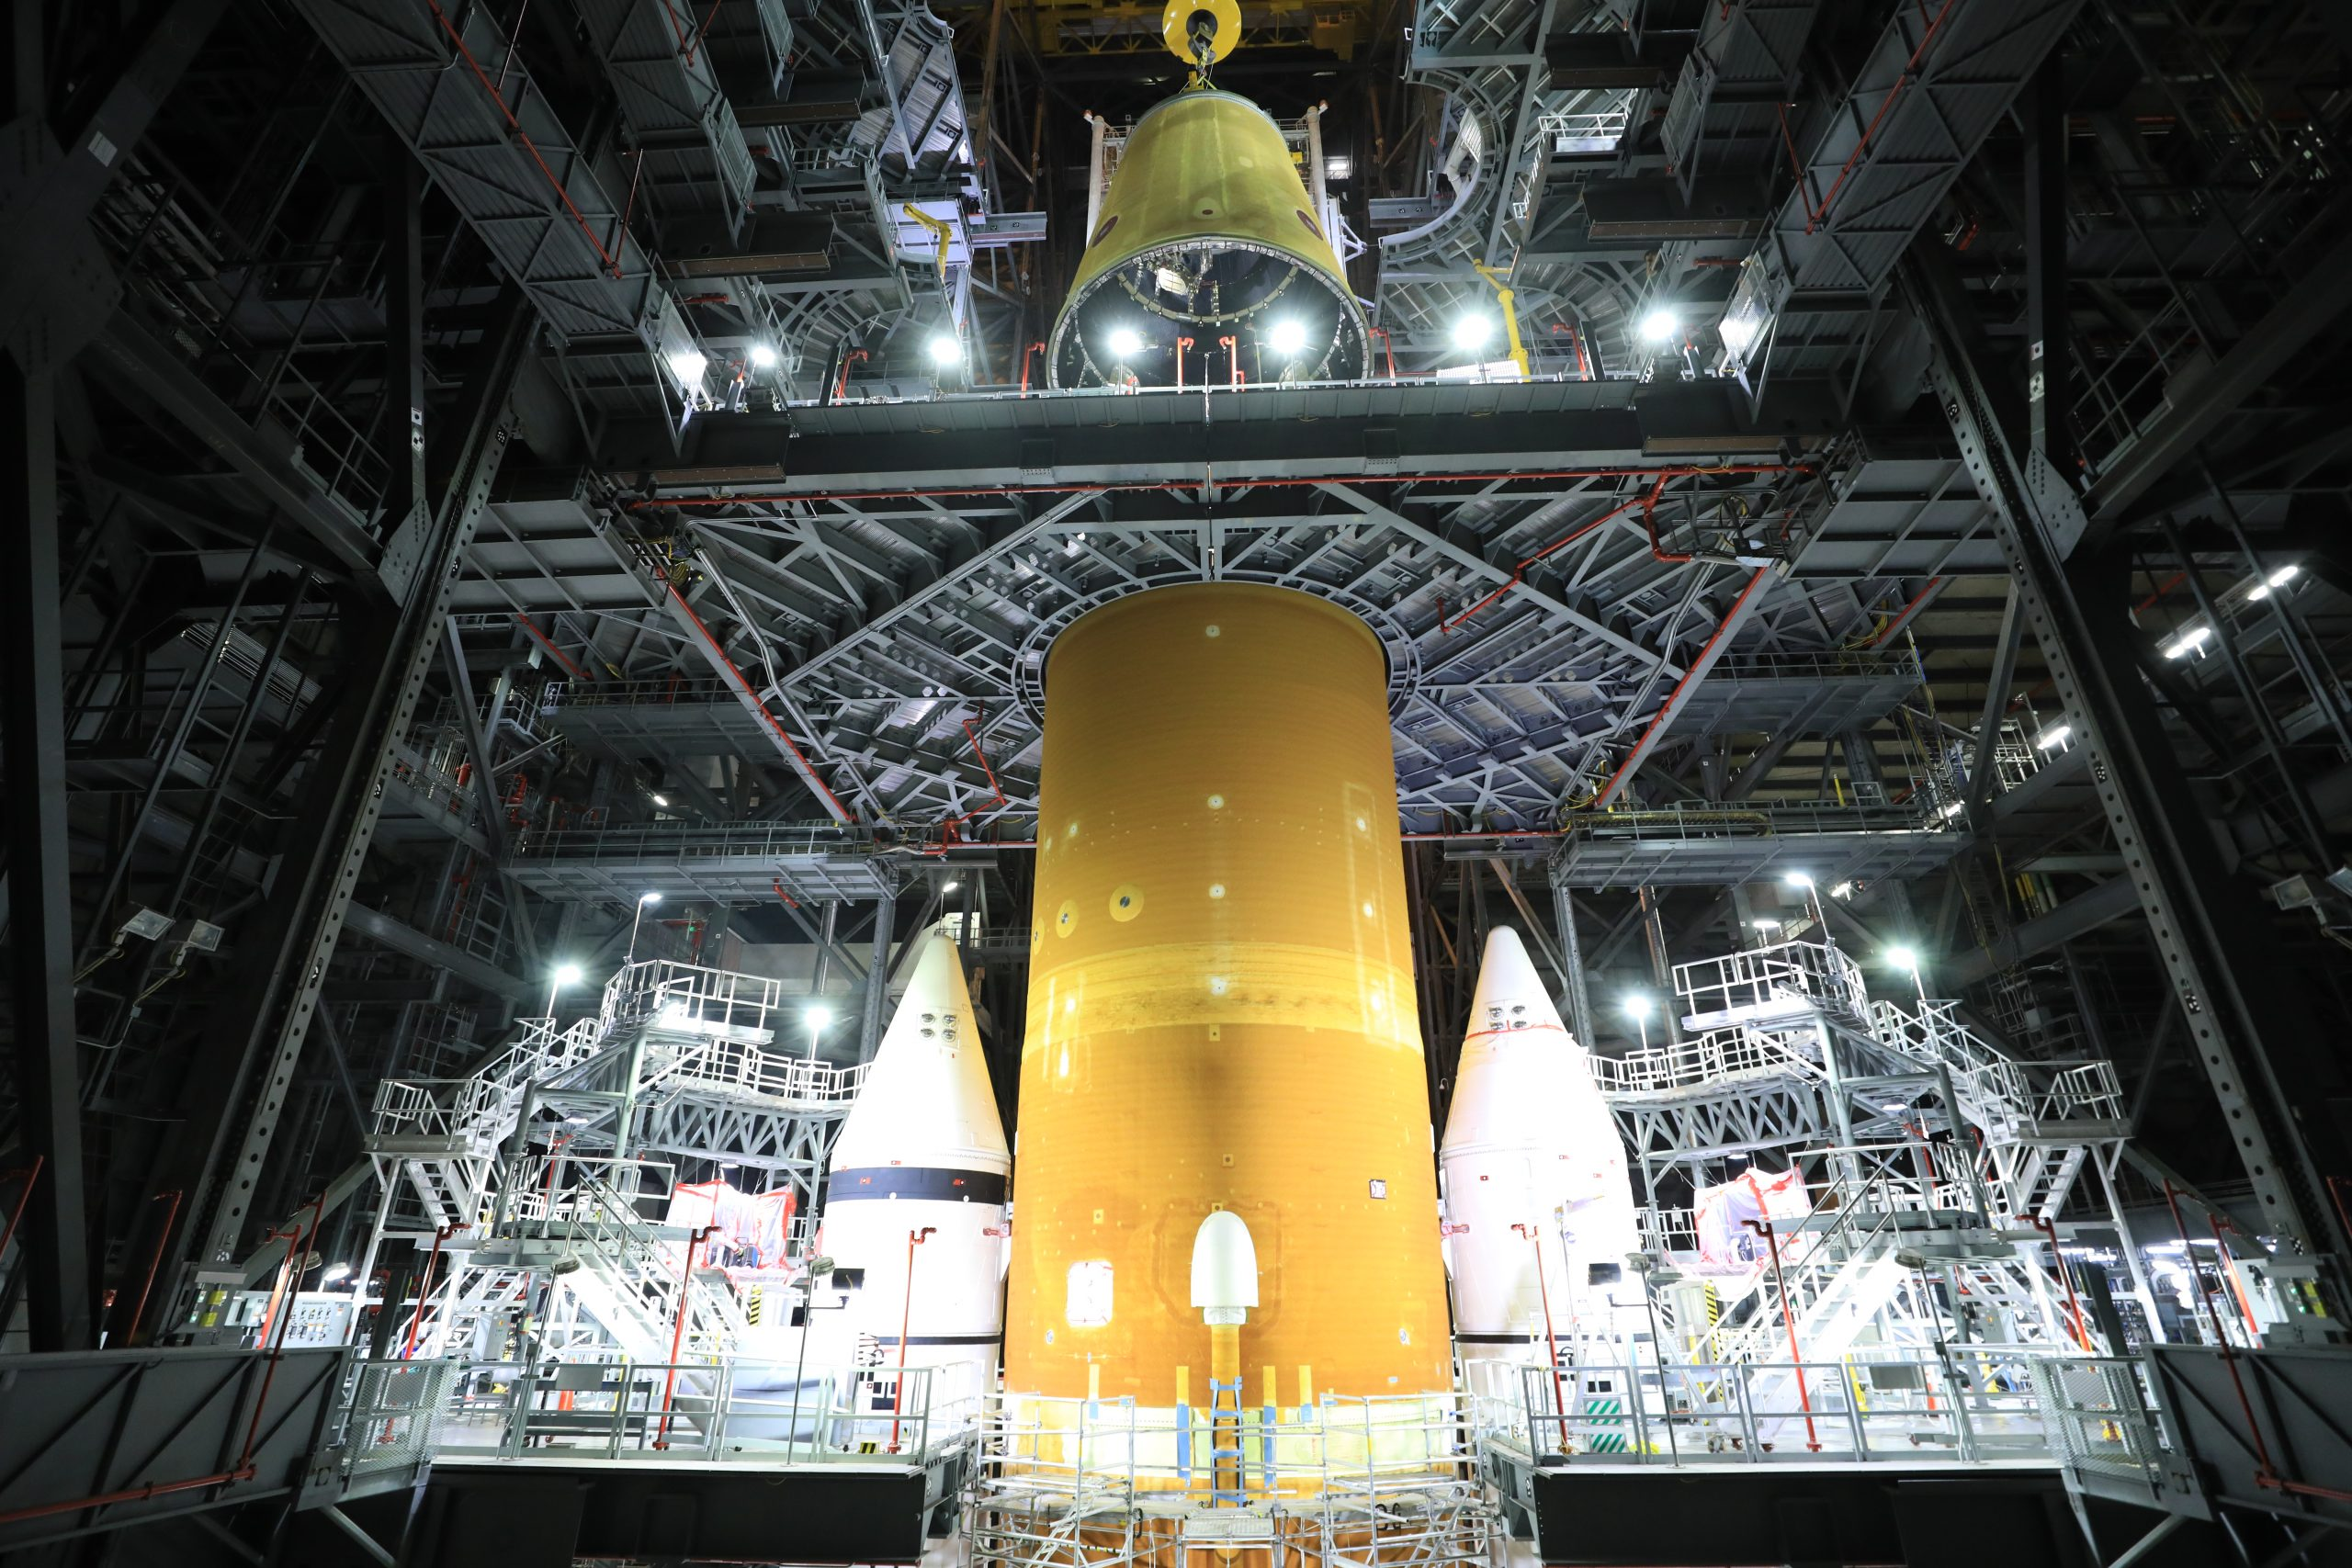 The launch vehicle stage adapter for the Space Launch System rocket is integrated with the core stage inside the Vehicle Assembly Building.